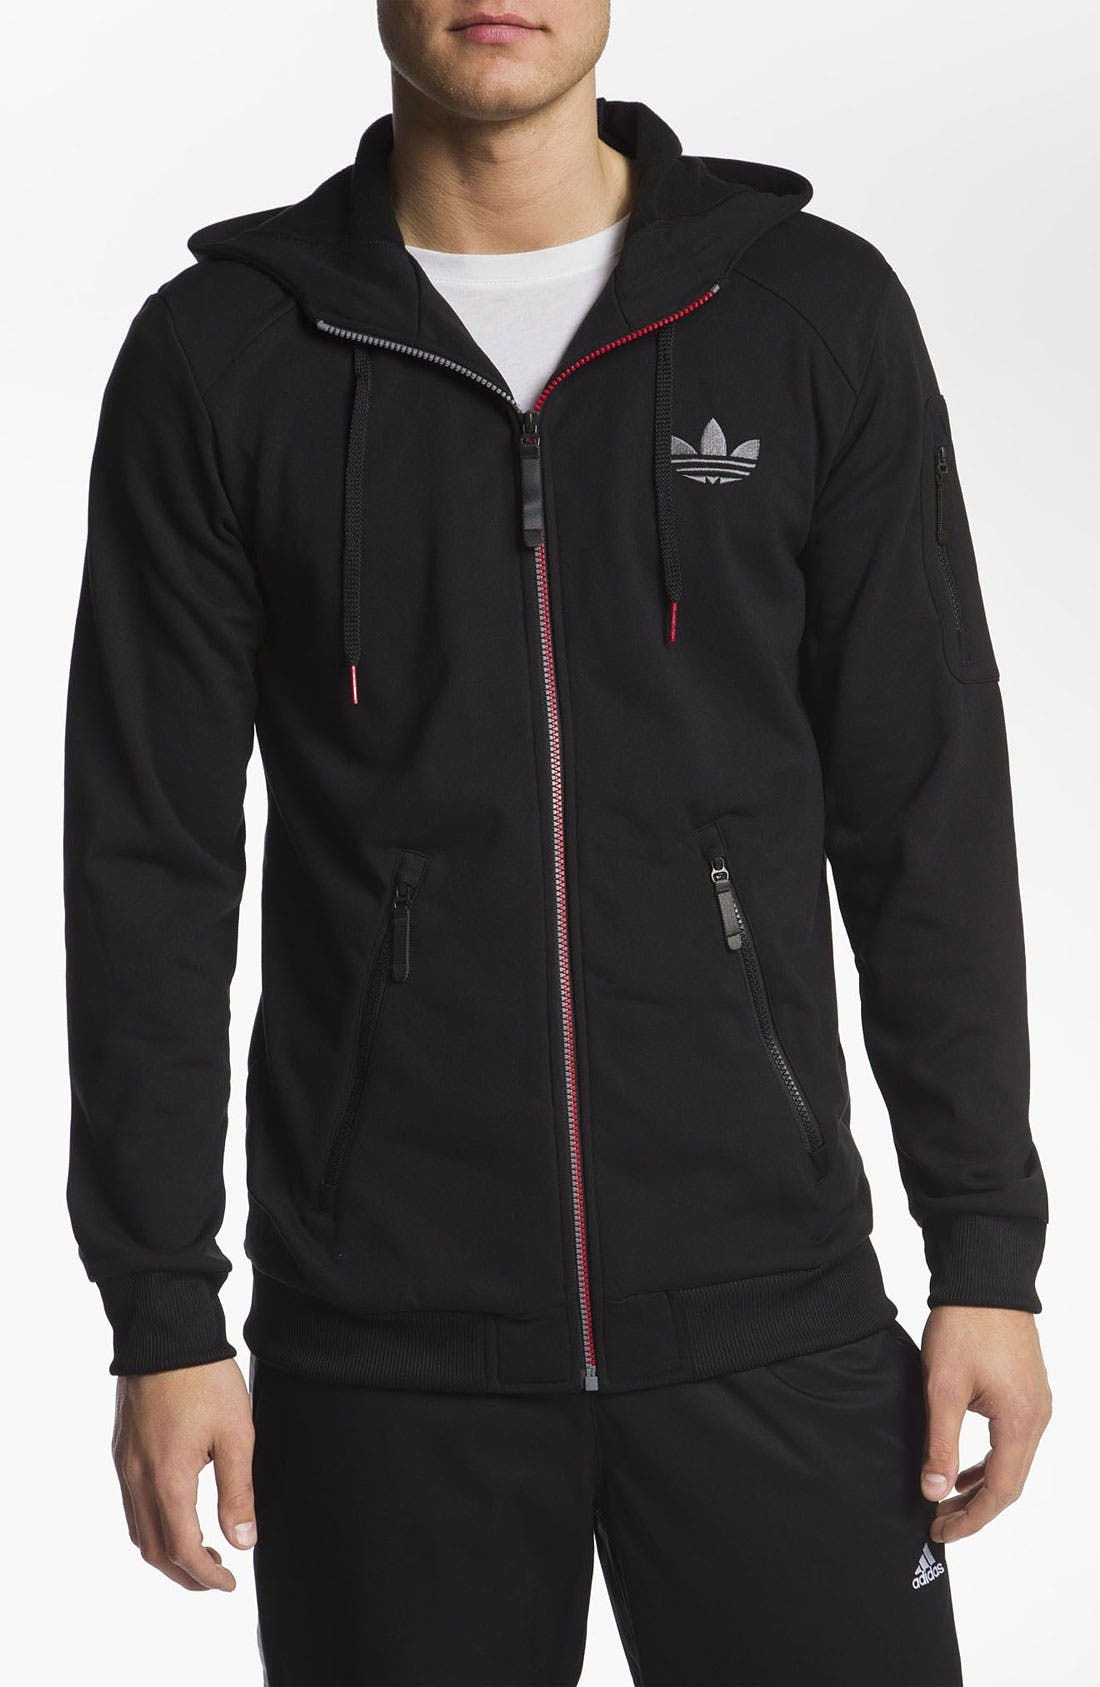 Alternate Image 1 Selected - adidas 'C90' Zip Hoodie